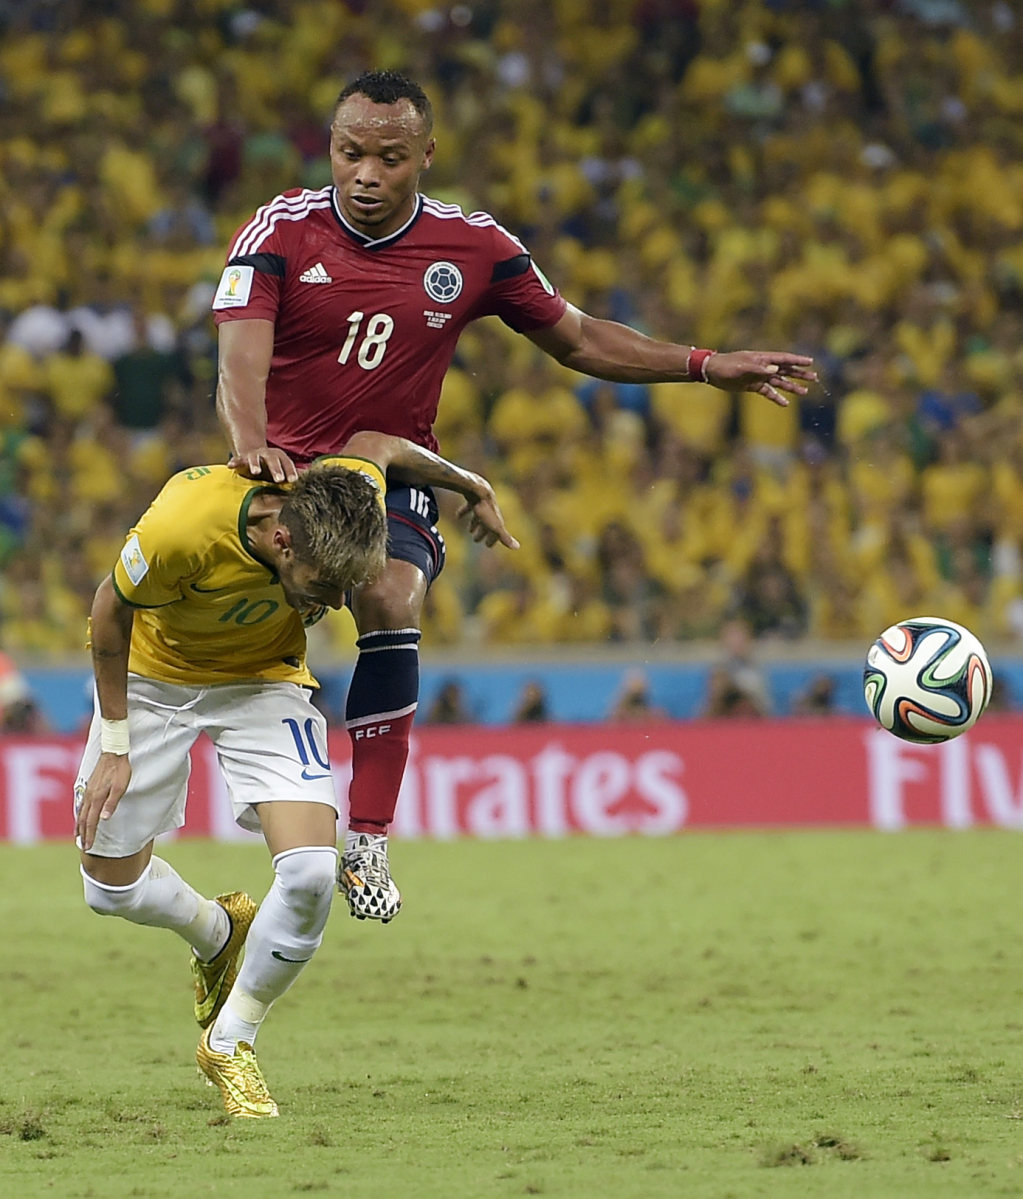 Zuniga injuring Neymar with his knee, in the FIFA World Cup 2014 game between Brazil and Colombia